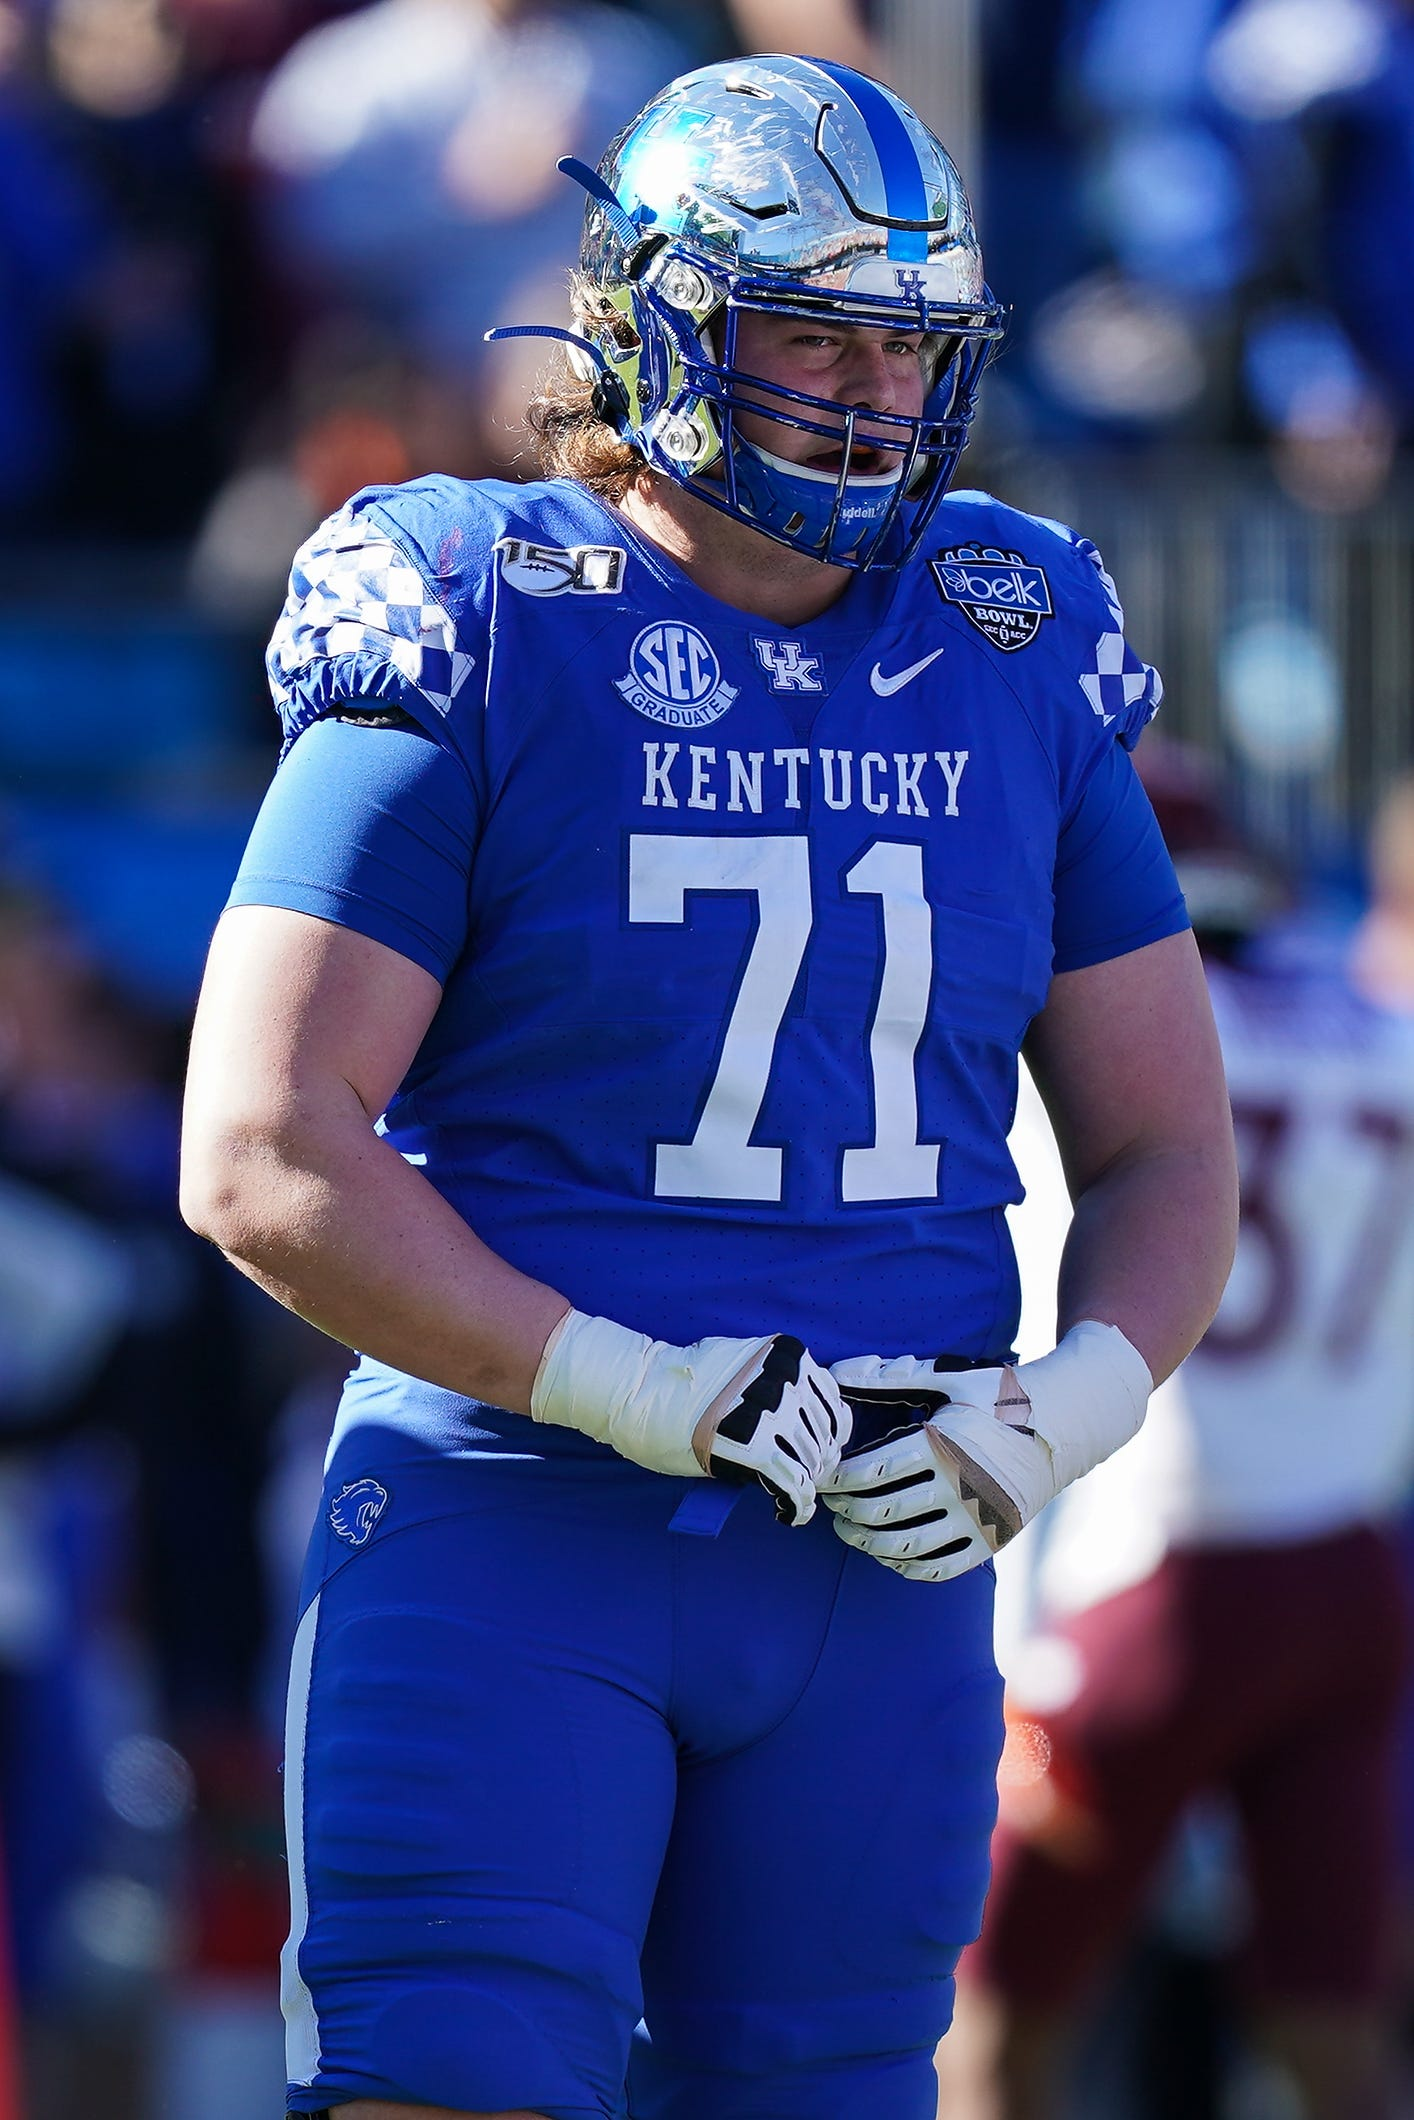 Fourth-round pick Logan Stenberg will be hard-pressed to win a starting job out of training camp with no preseason games.